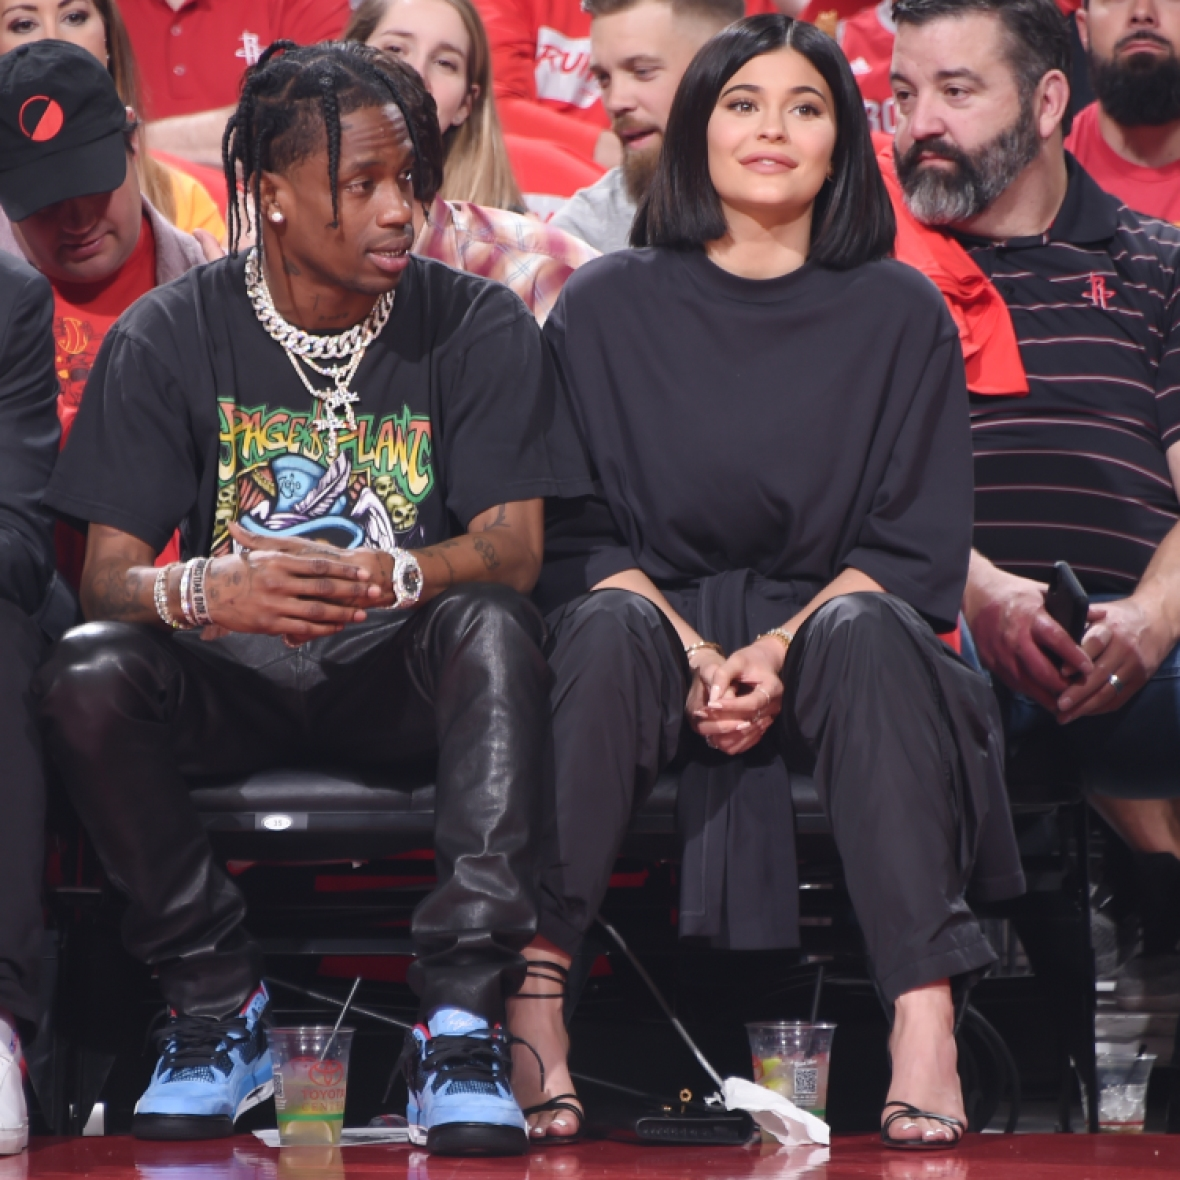 kylie jenner travis scott basketball game getty images